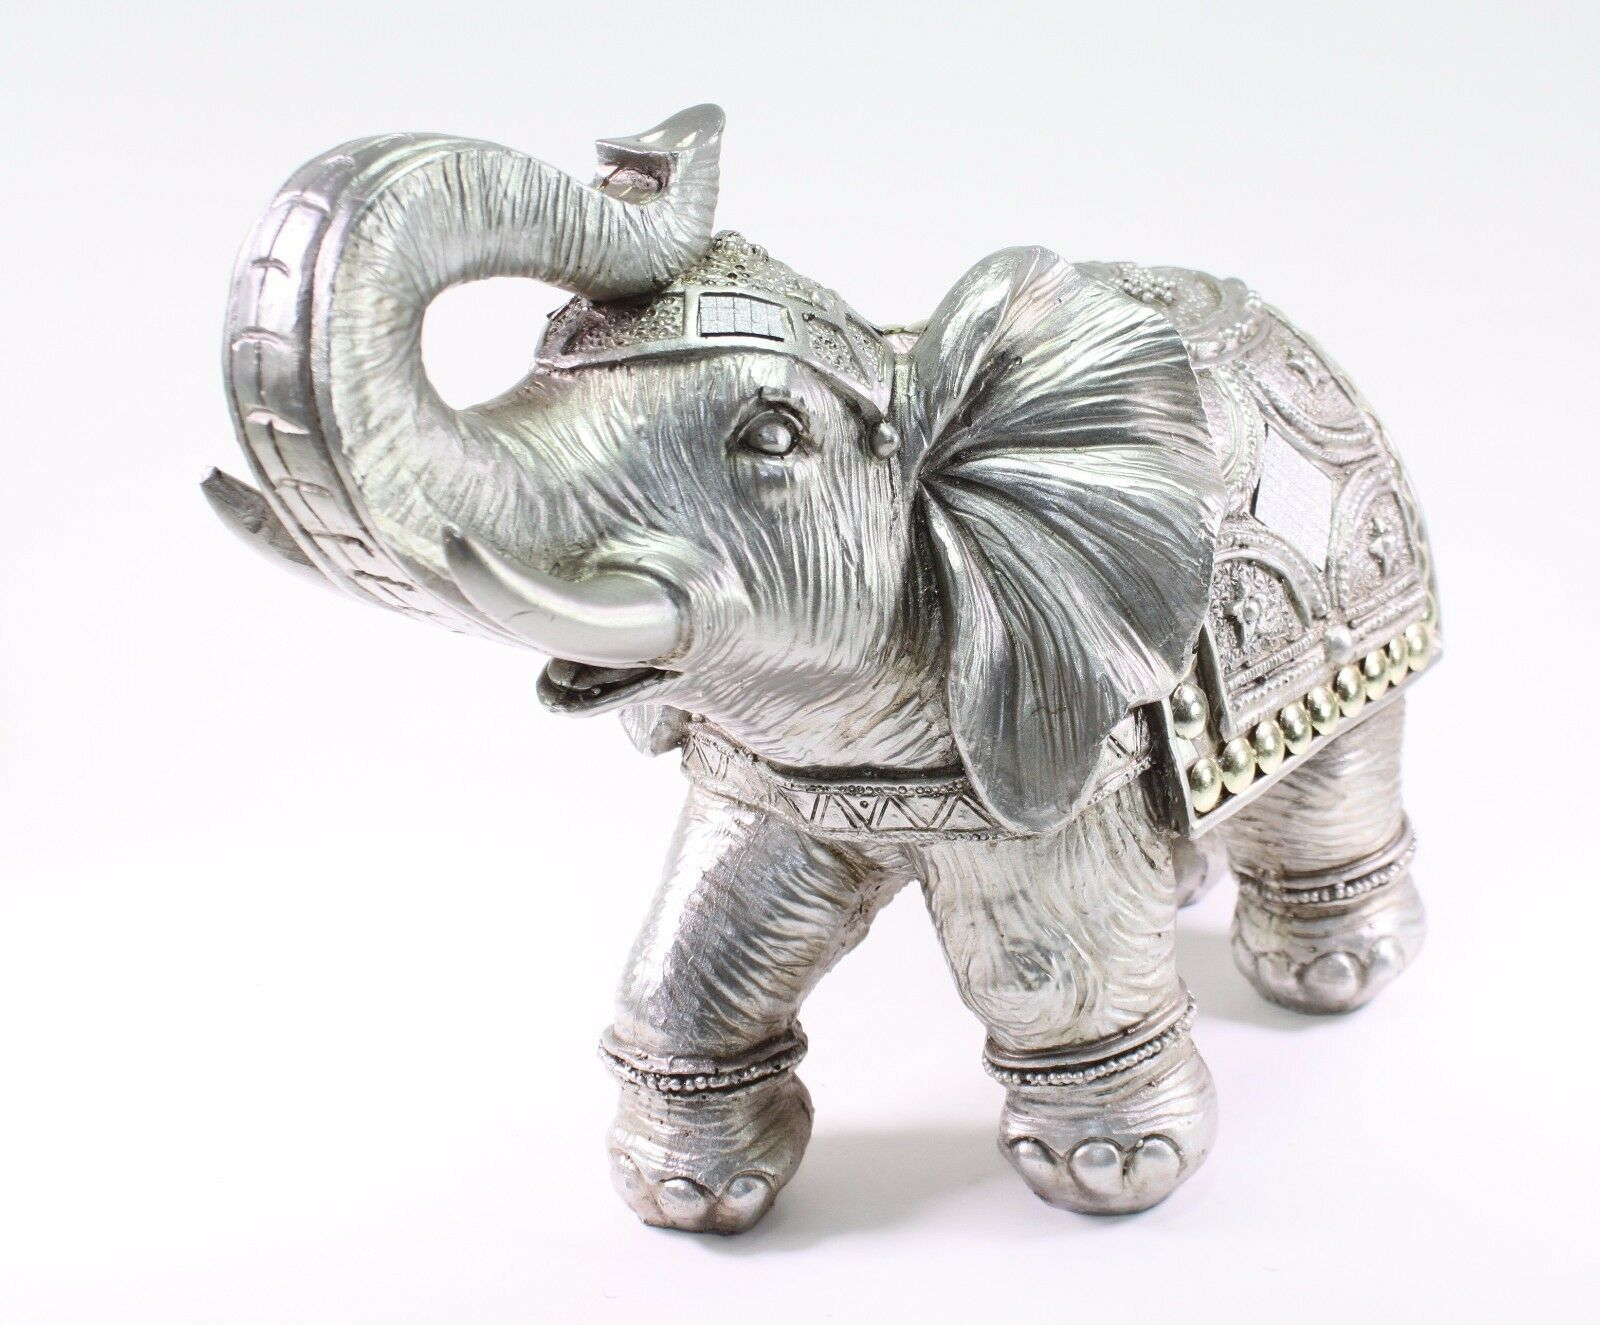 Feng shui 13 silver large elephant trunk statue lucky African elephant home decor